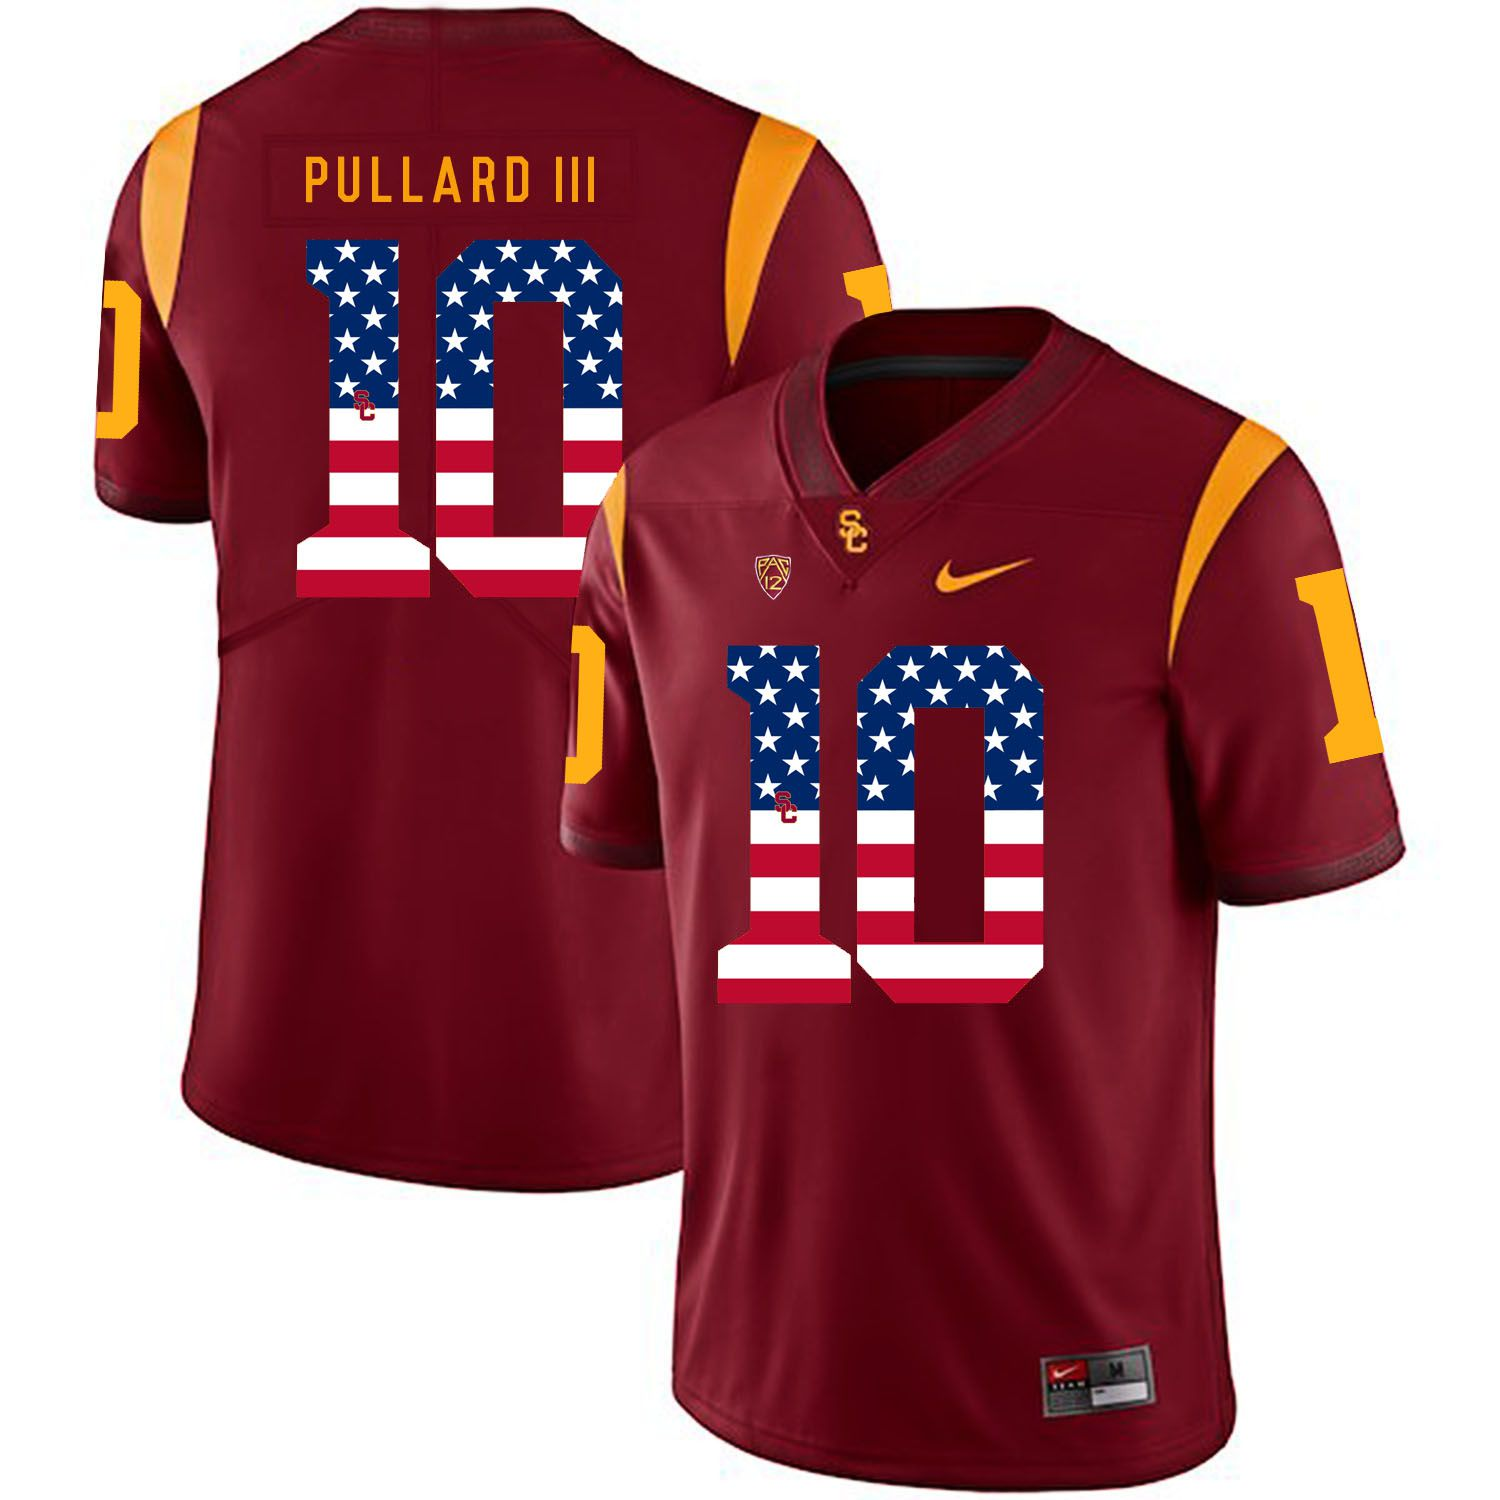 Men USC Trojans 10 Pullard iii Red Flag Customized NCAA Jerseys